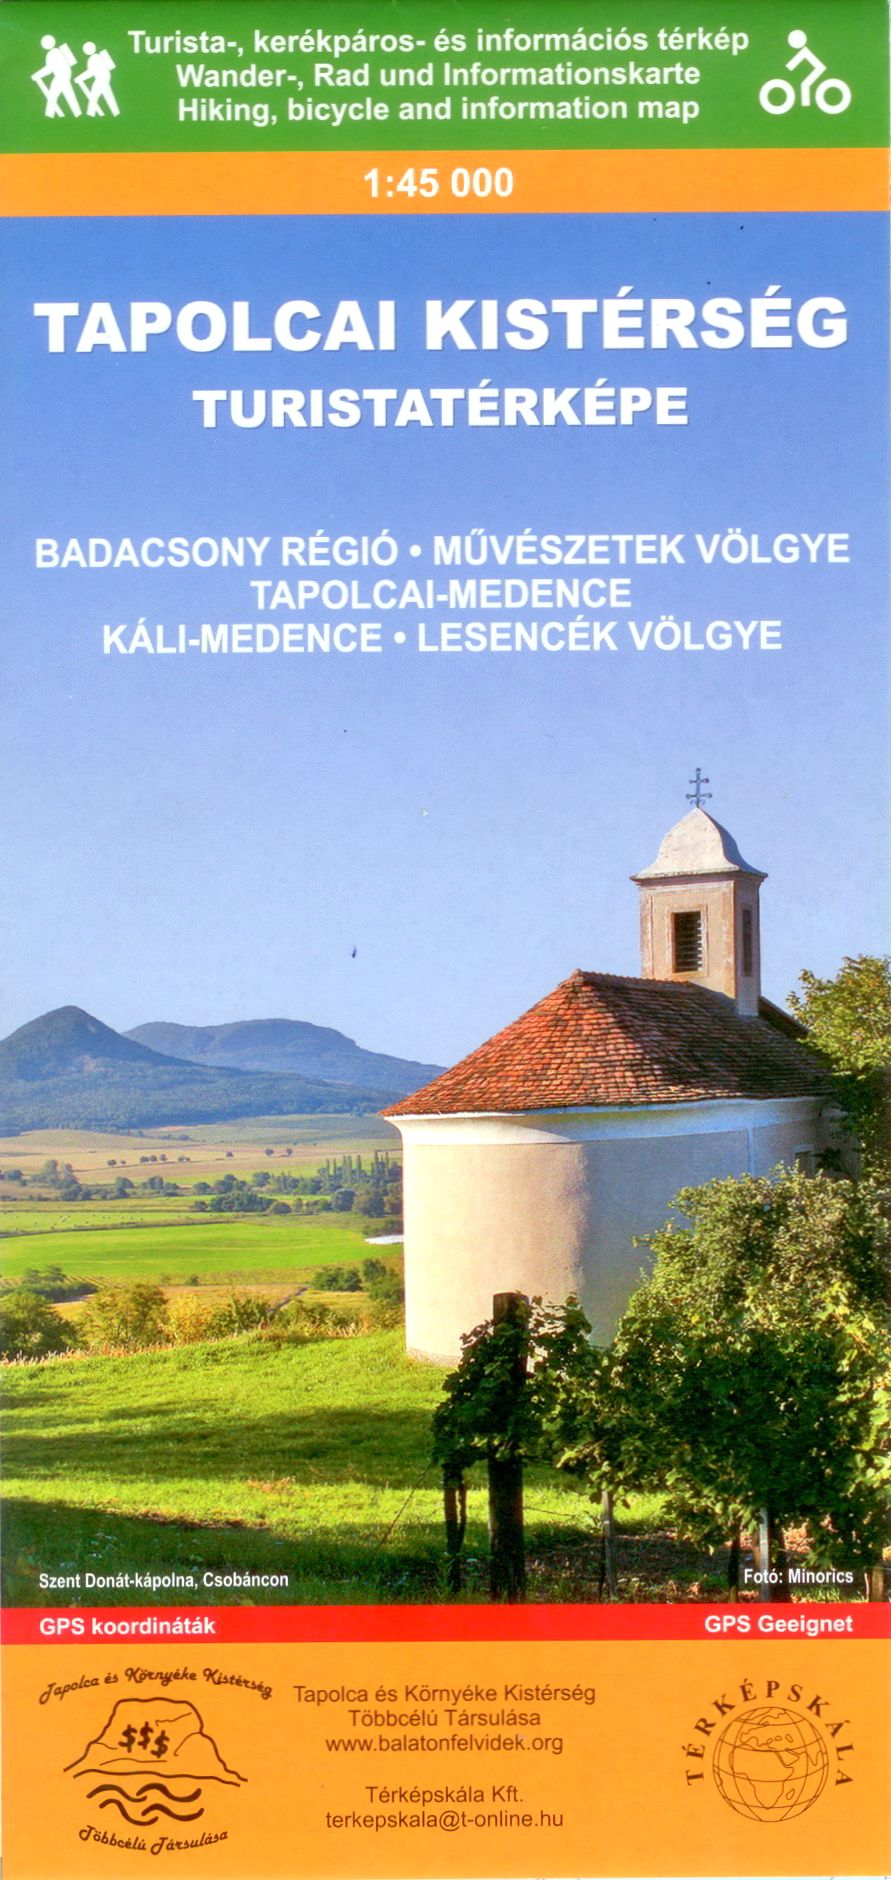 Badacsony, Valley of Arts, Tapolca-basin, Kál-basin, Lesence-valley